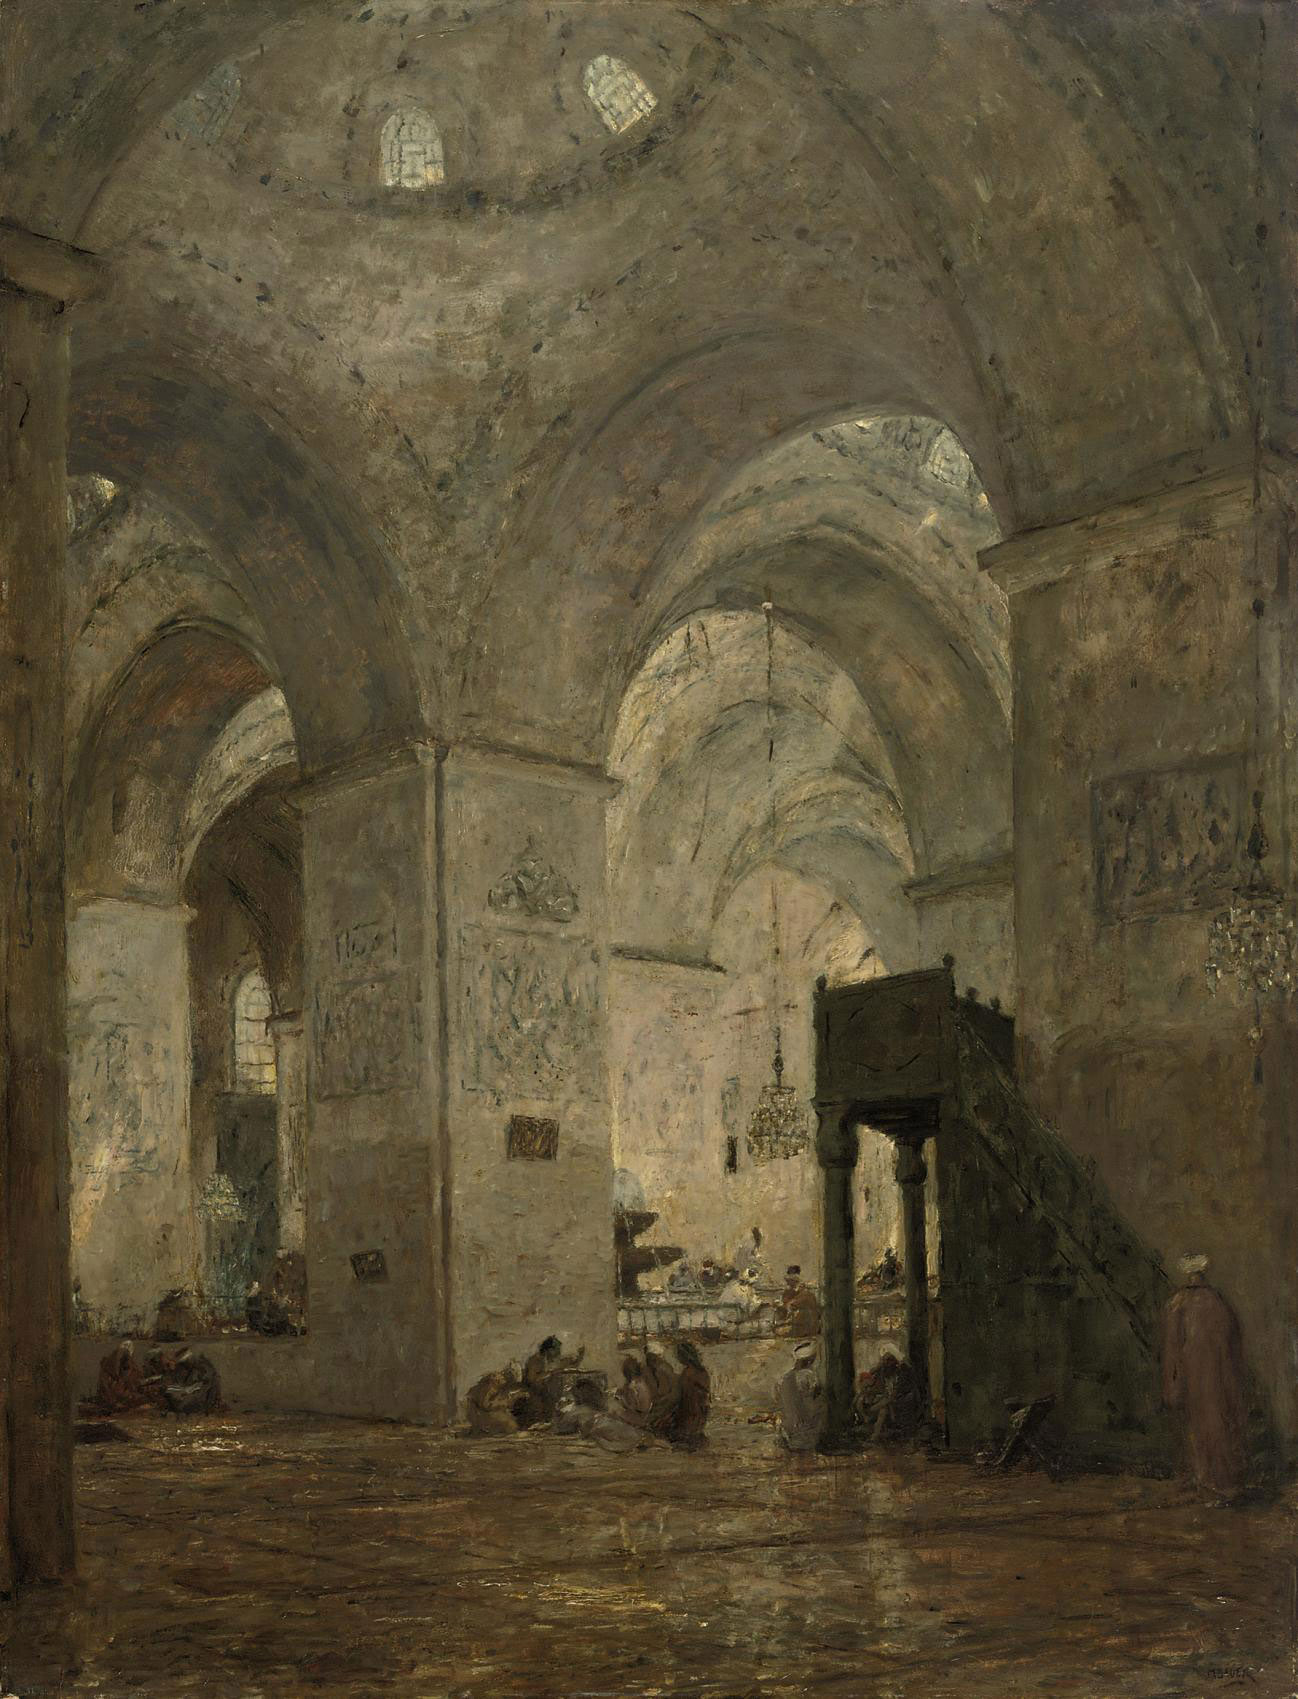 Oosterse Moskee: interior of the Ulu mosque in Bursa, Turkey